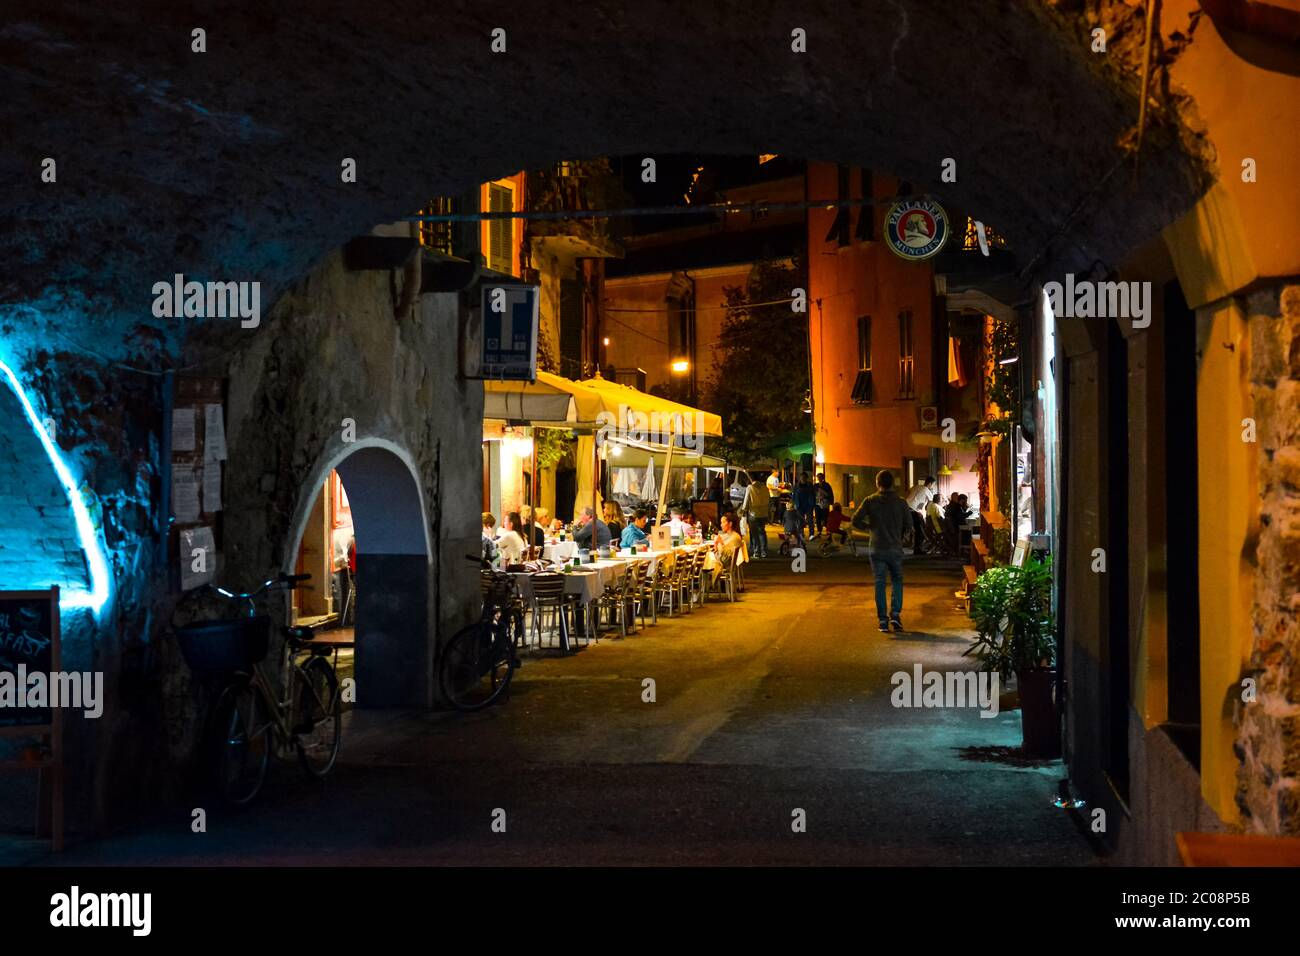 Late night in the village of Monterosso Al Mare, part of the Cinque Terre in Italy on the Italian Riviera as tourists enjoy an evening sidewalk cafe Stock Photo